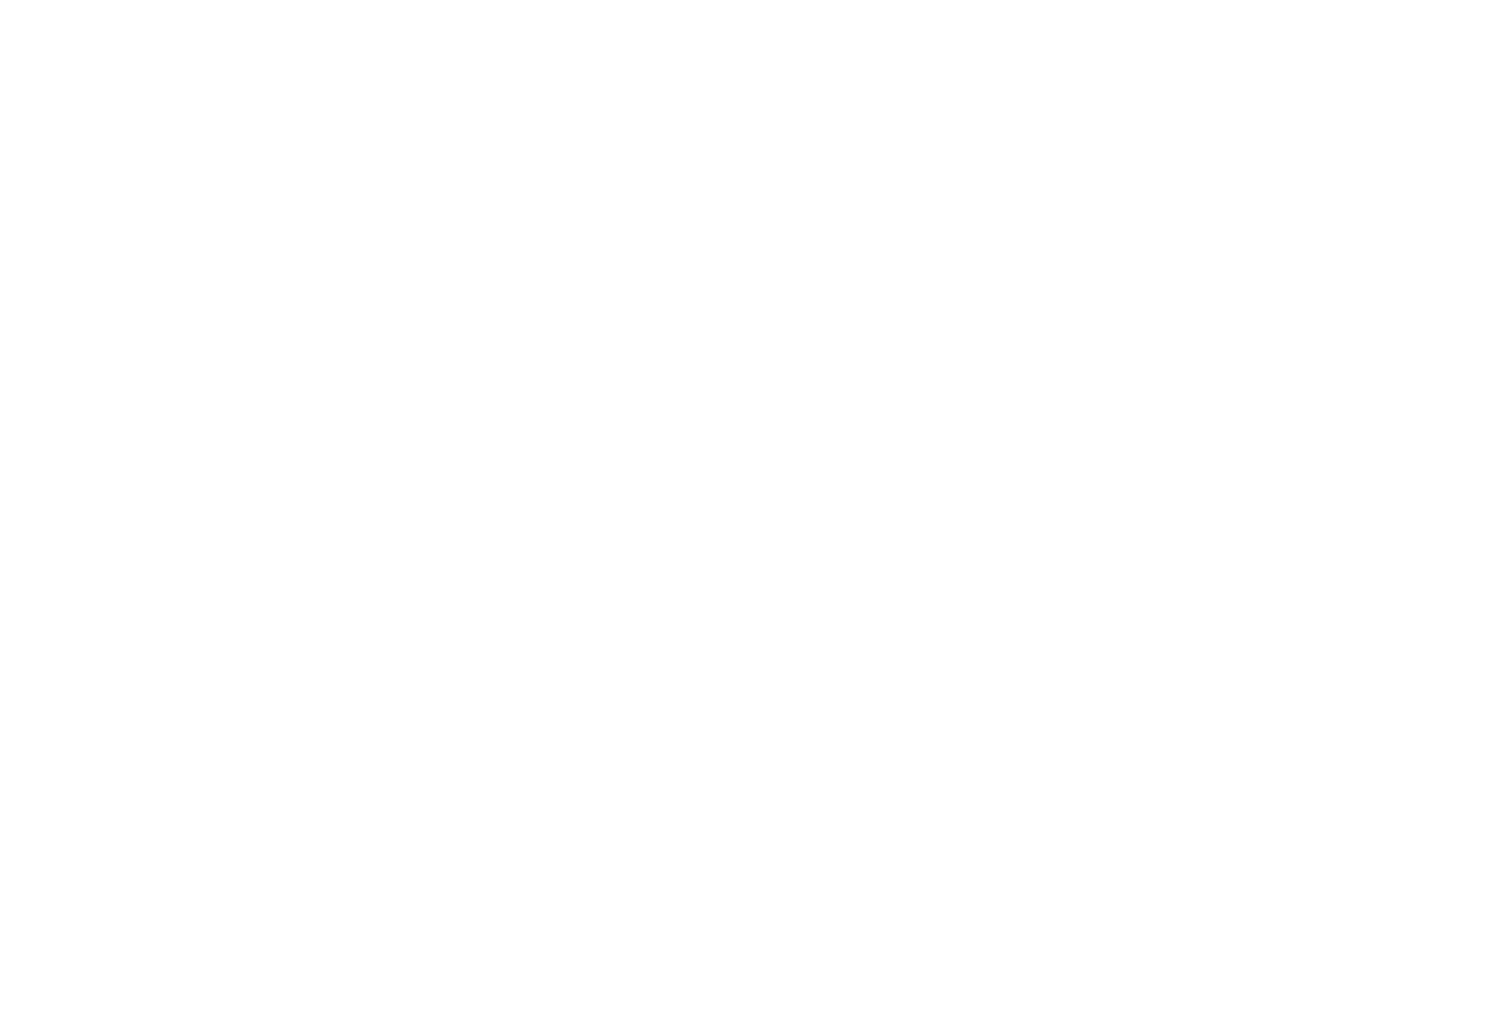 BOBO CHOSES BARCELONA BORN